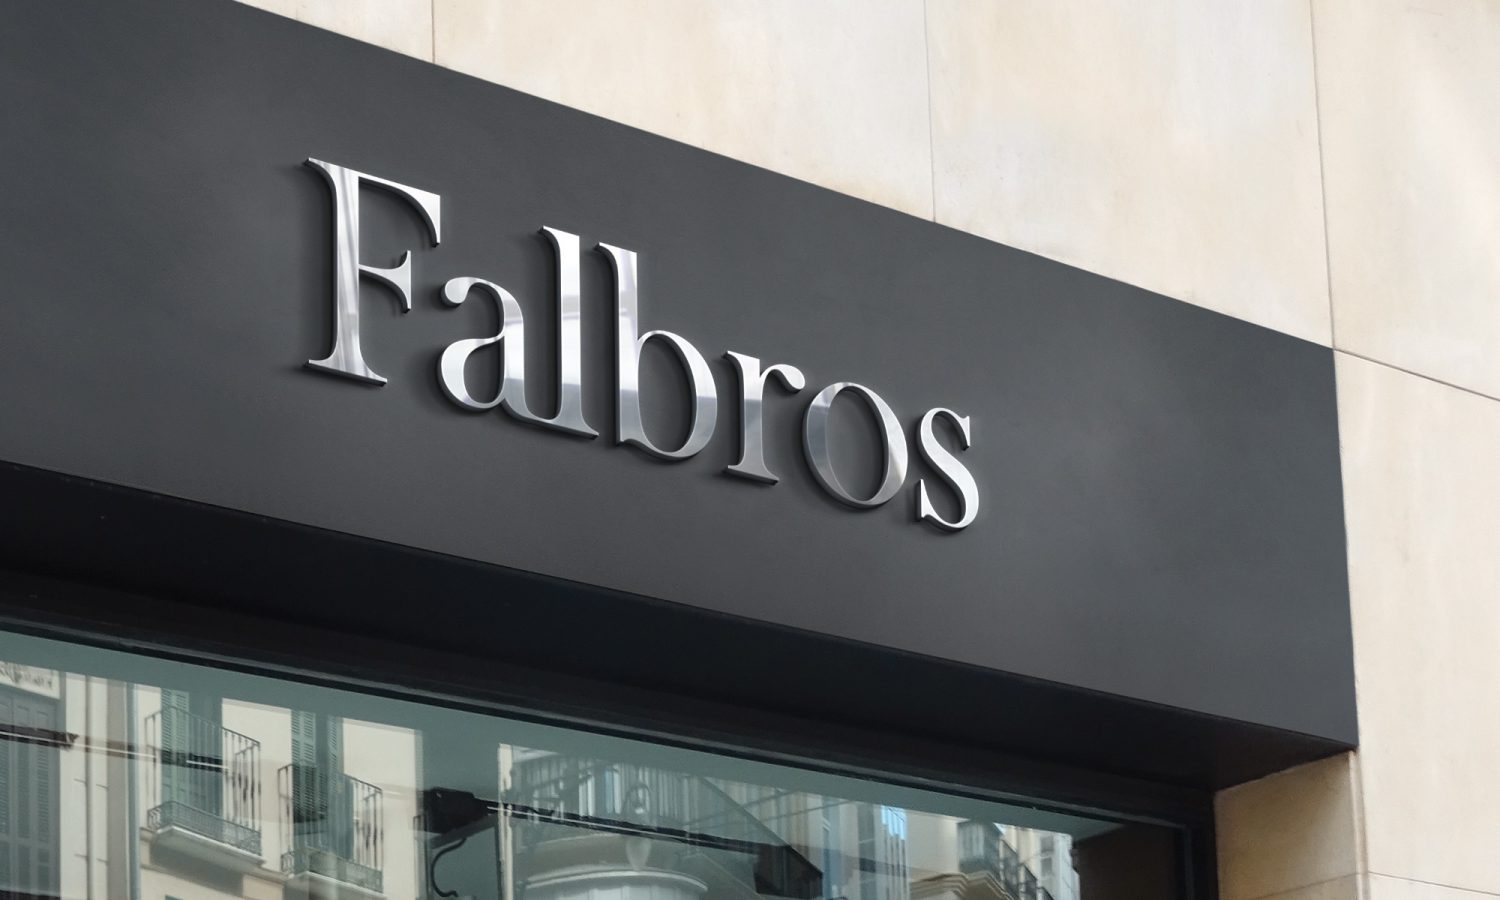 Fabros Group